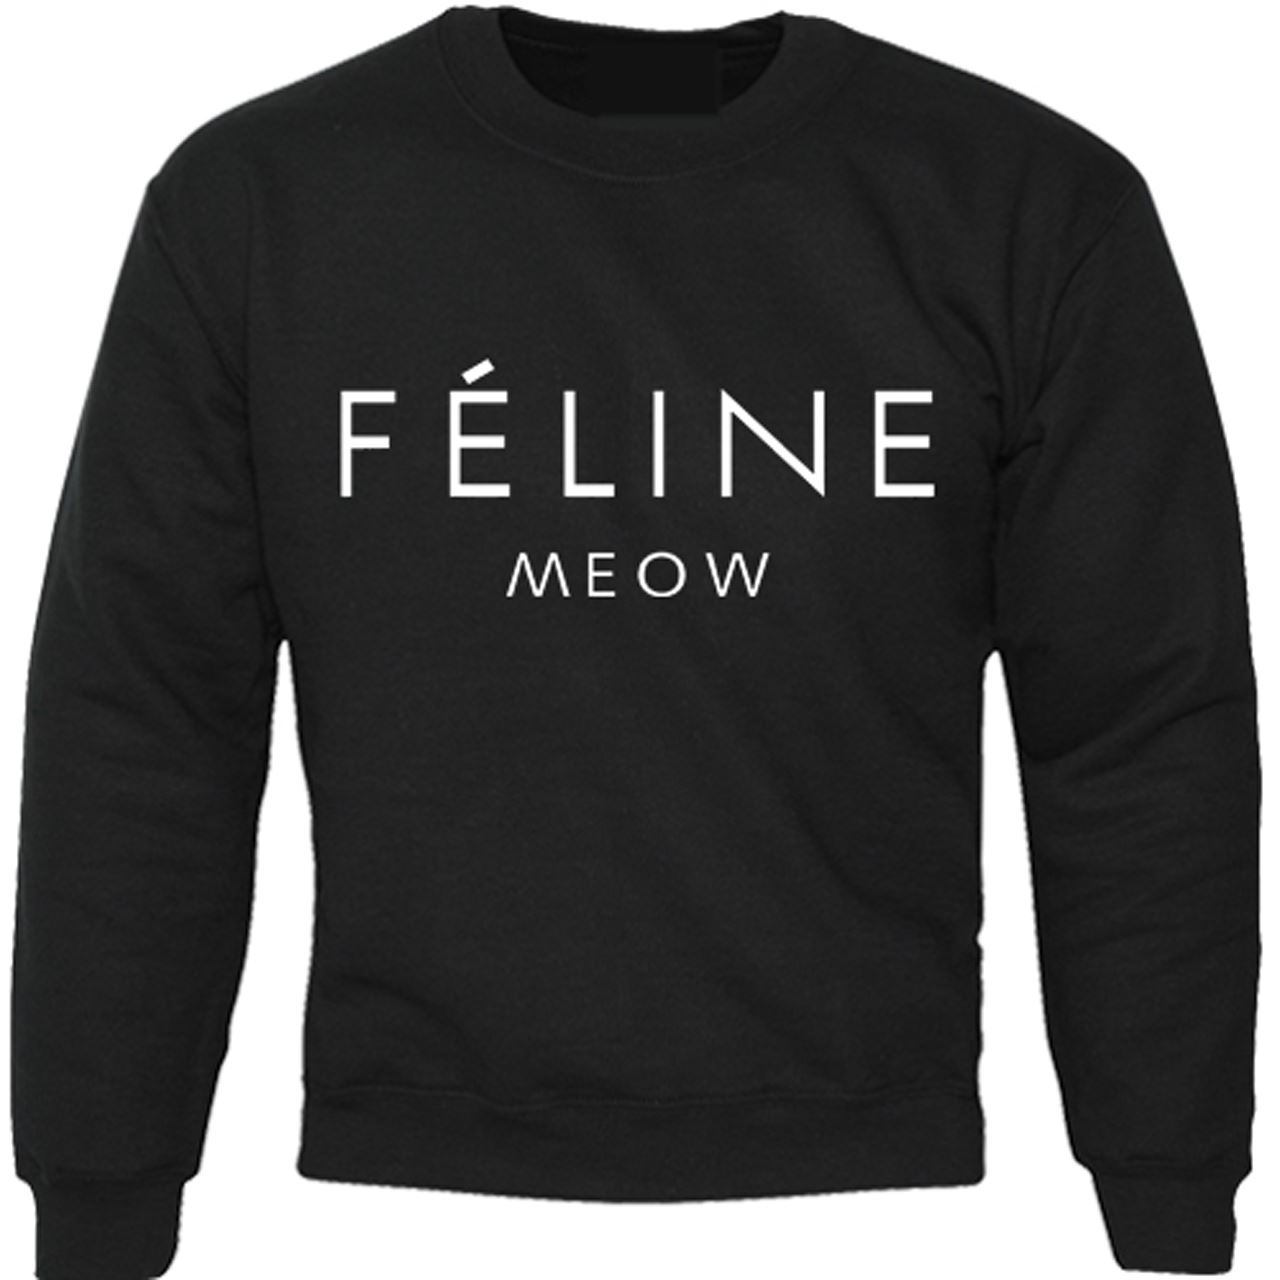 Mens-Boys-Unisex-Feline-Meow-Swag-Sweater-Hoodie-Sweat-Shirt-All-Sizes thumbnail 2